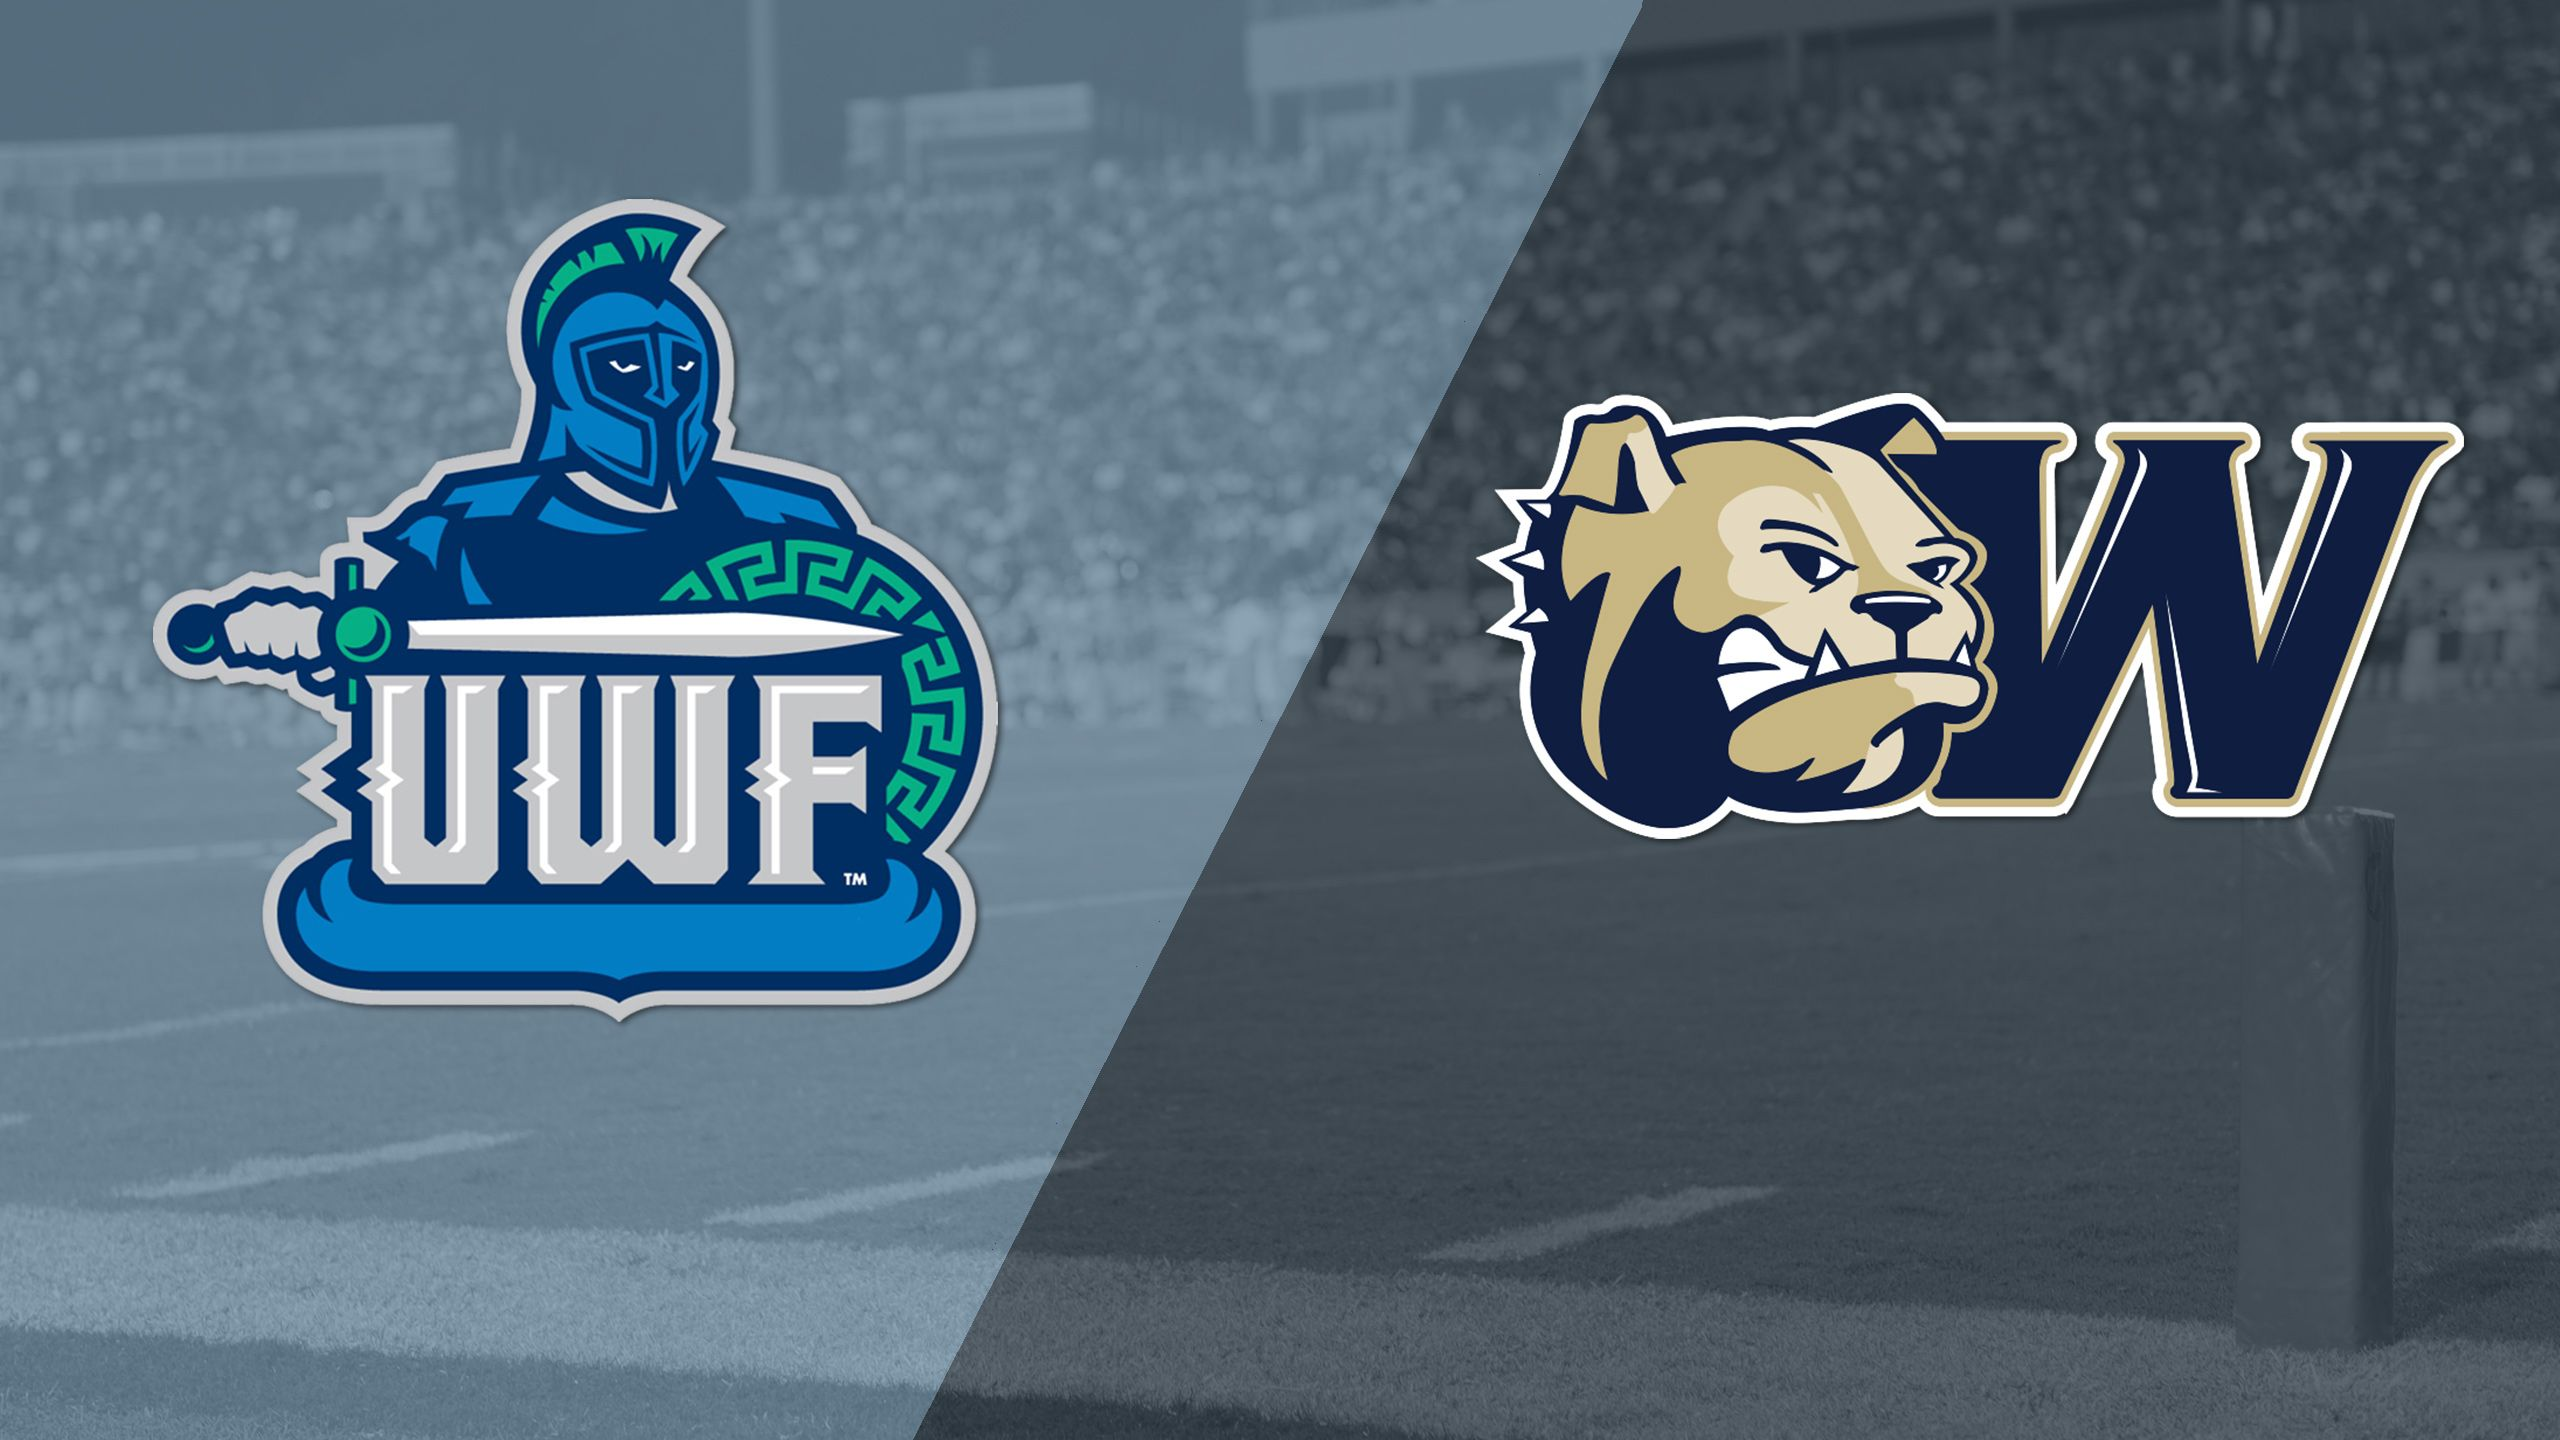 West Florida vs. Wingate (First Round) (NCAA Division II Football Championship)